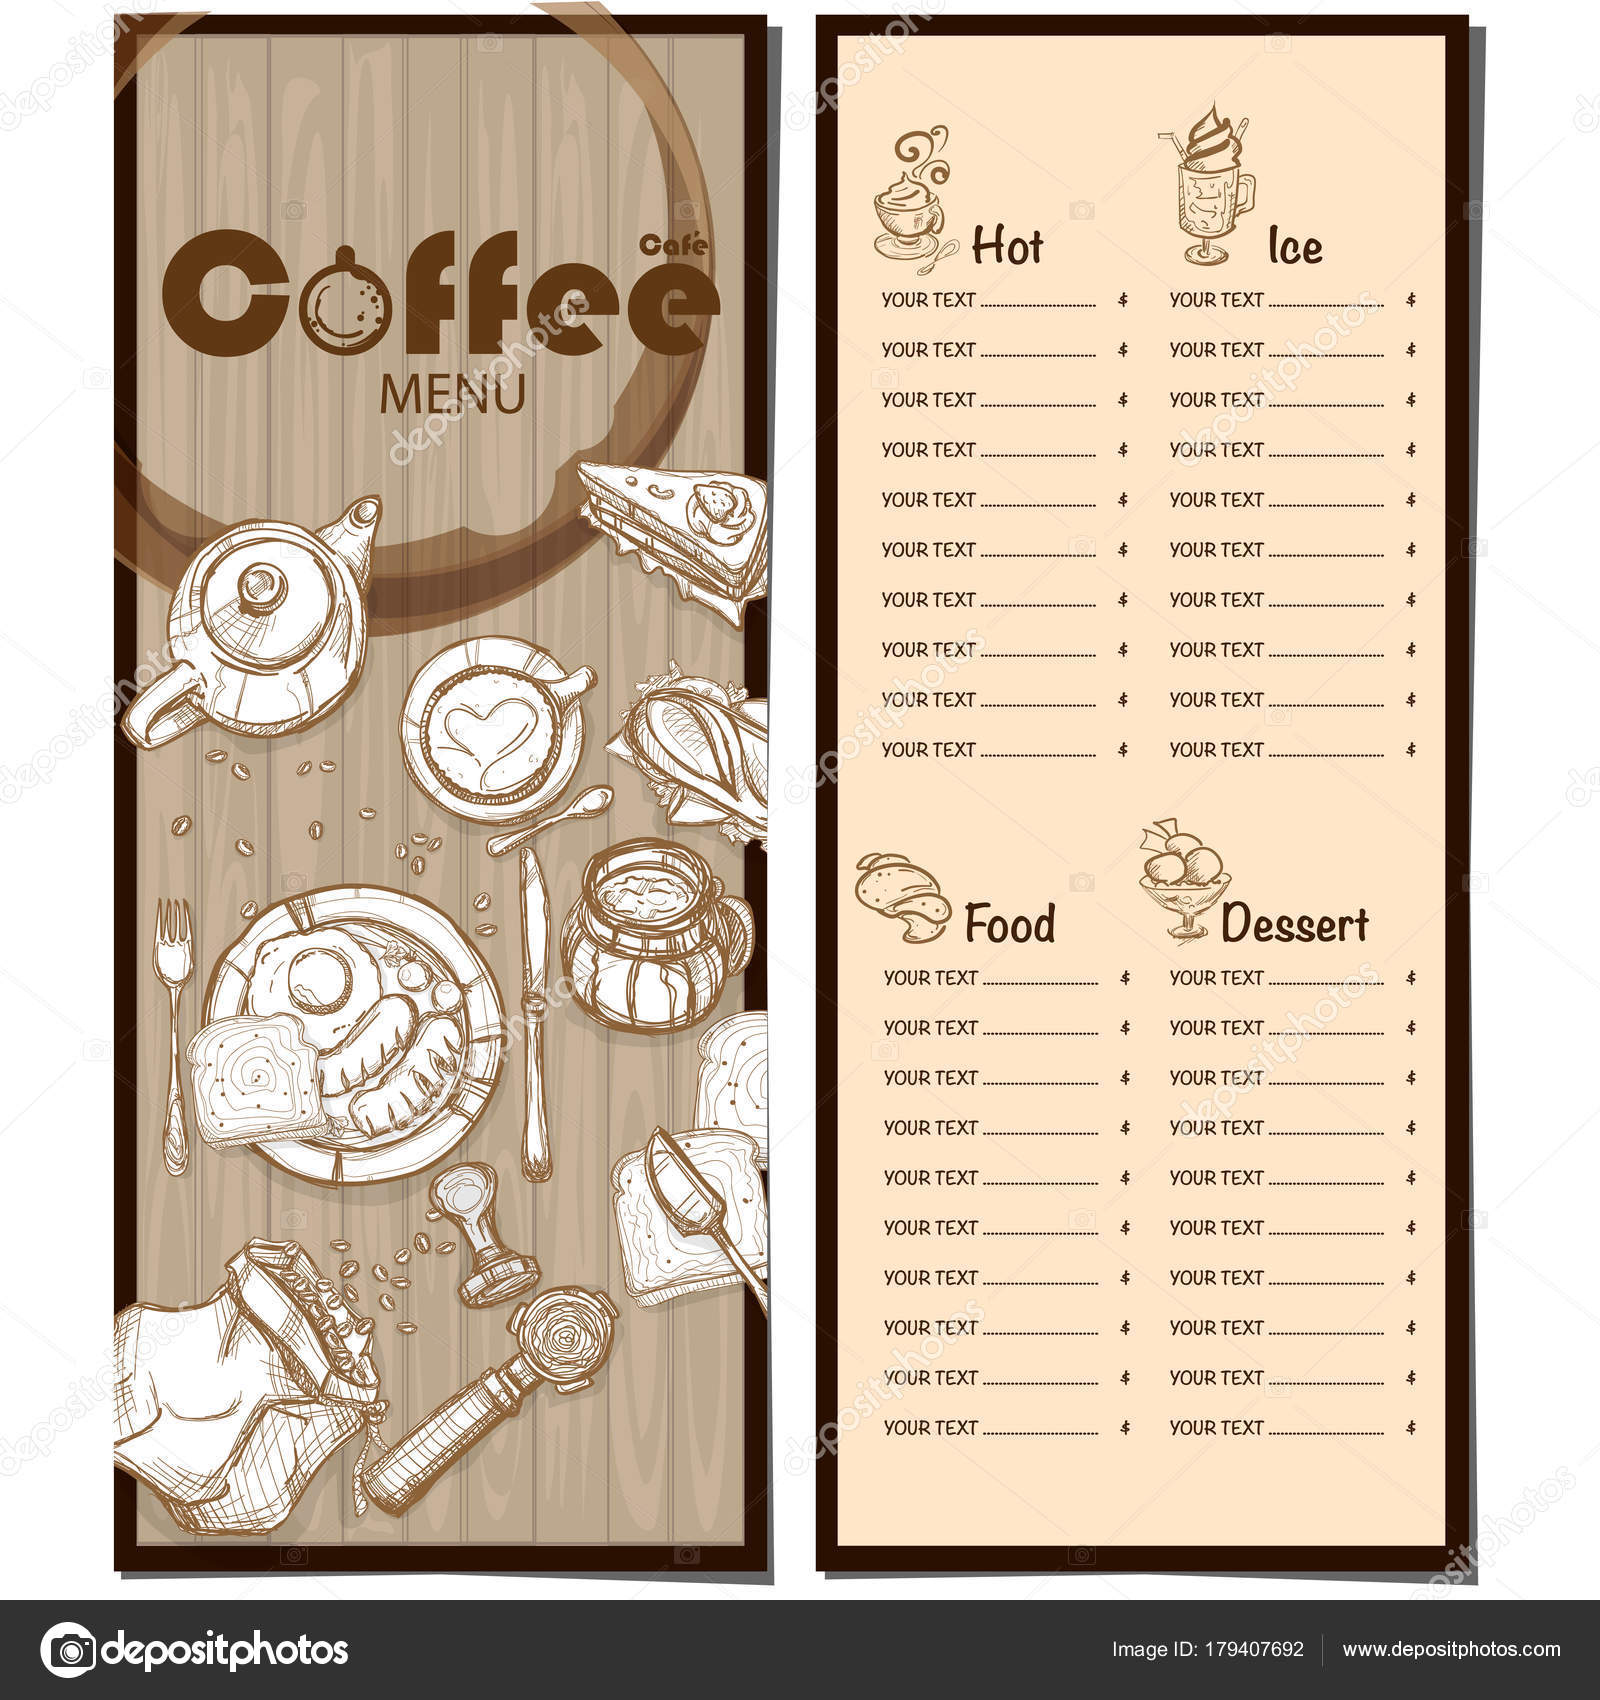 menu coffee shop cafe restaurant template design hand drawing